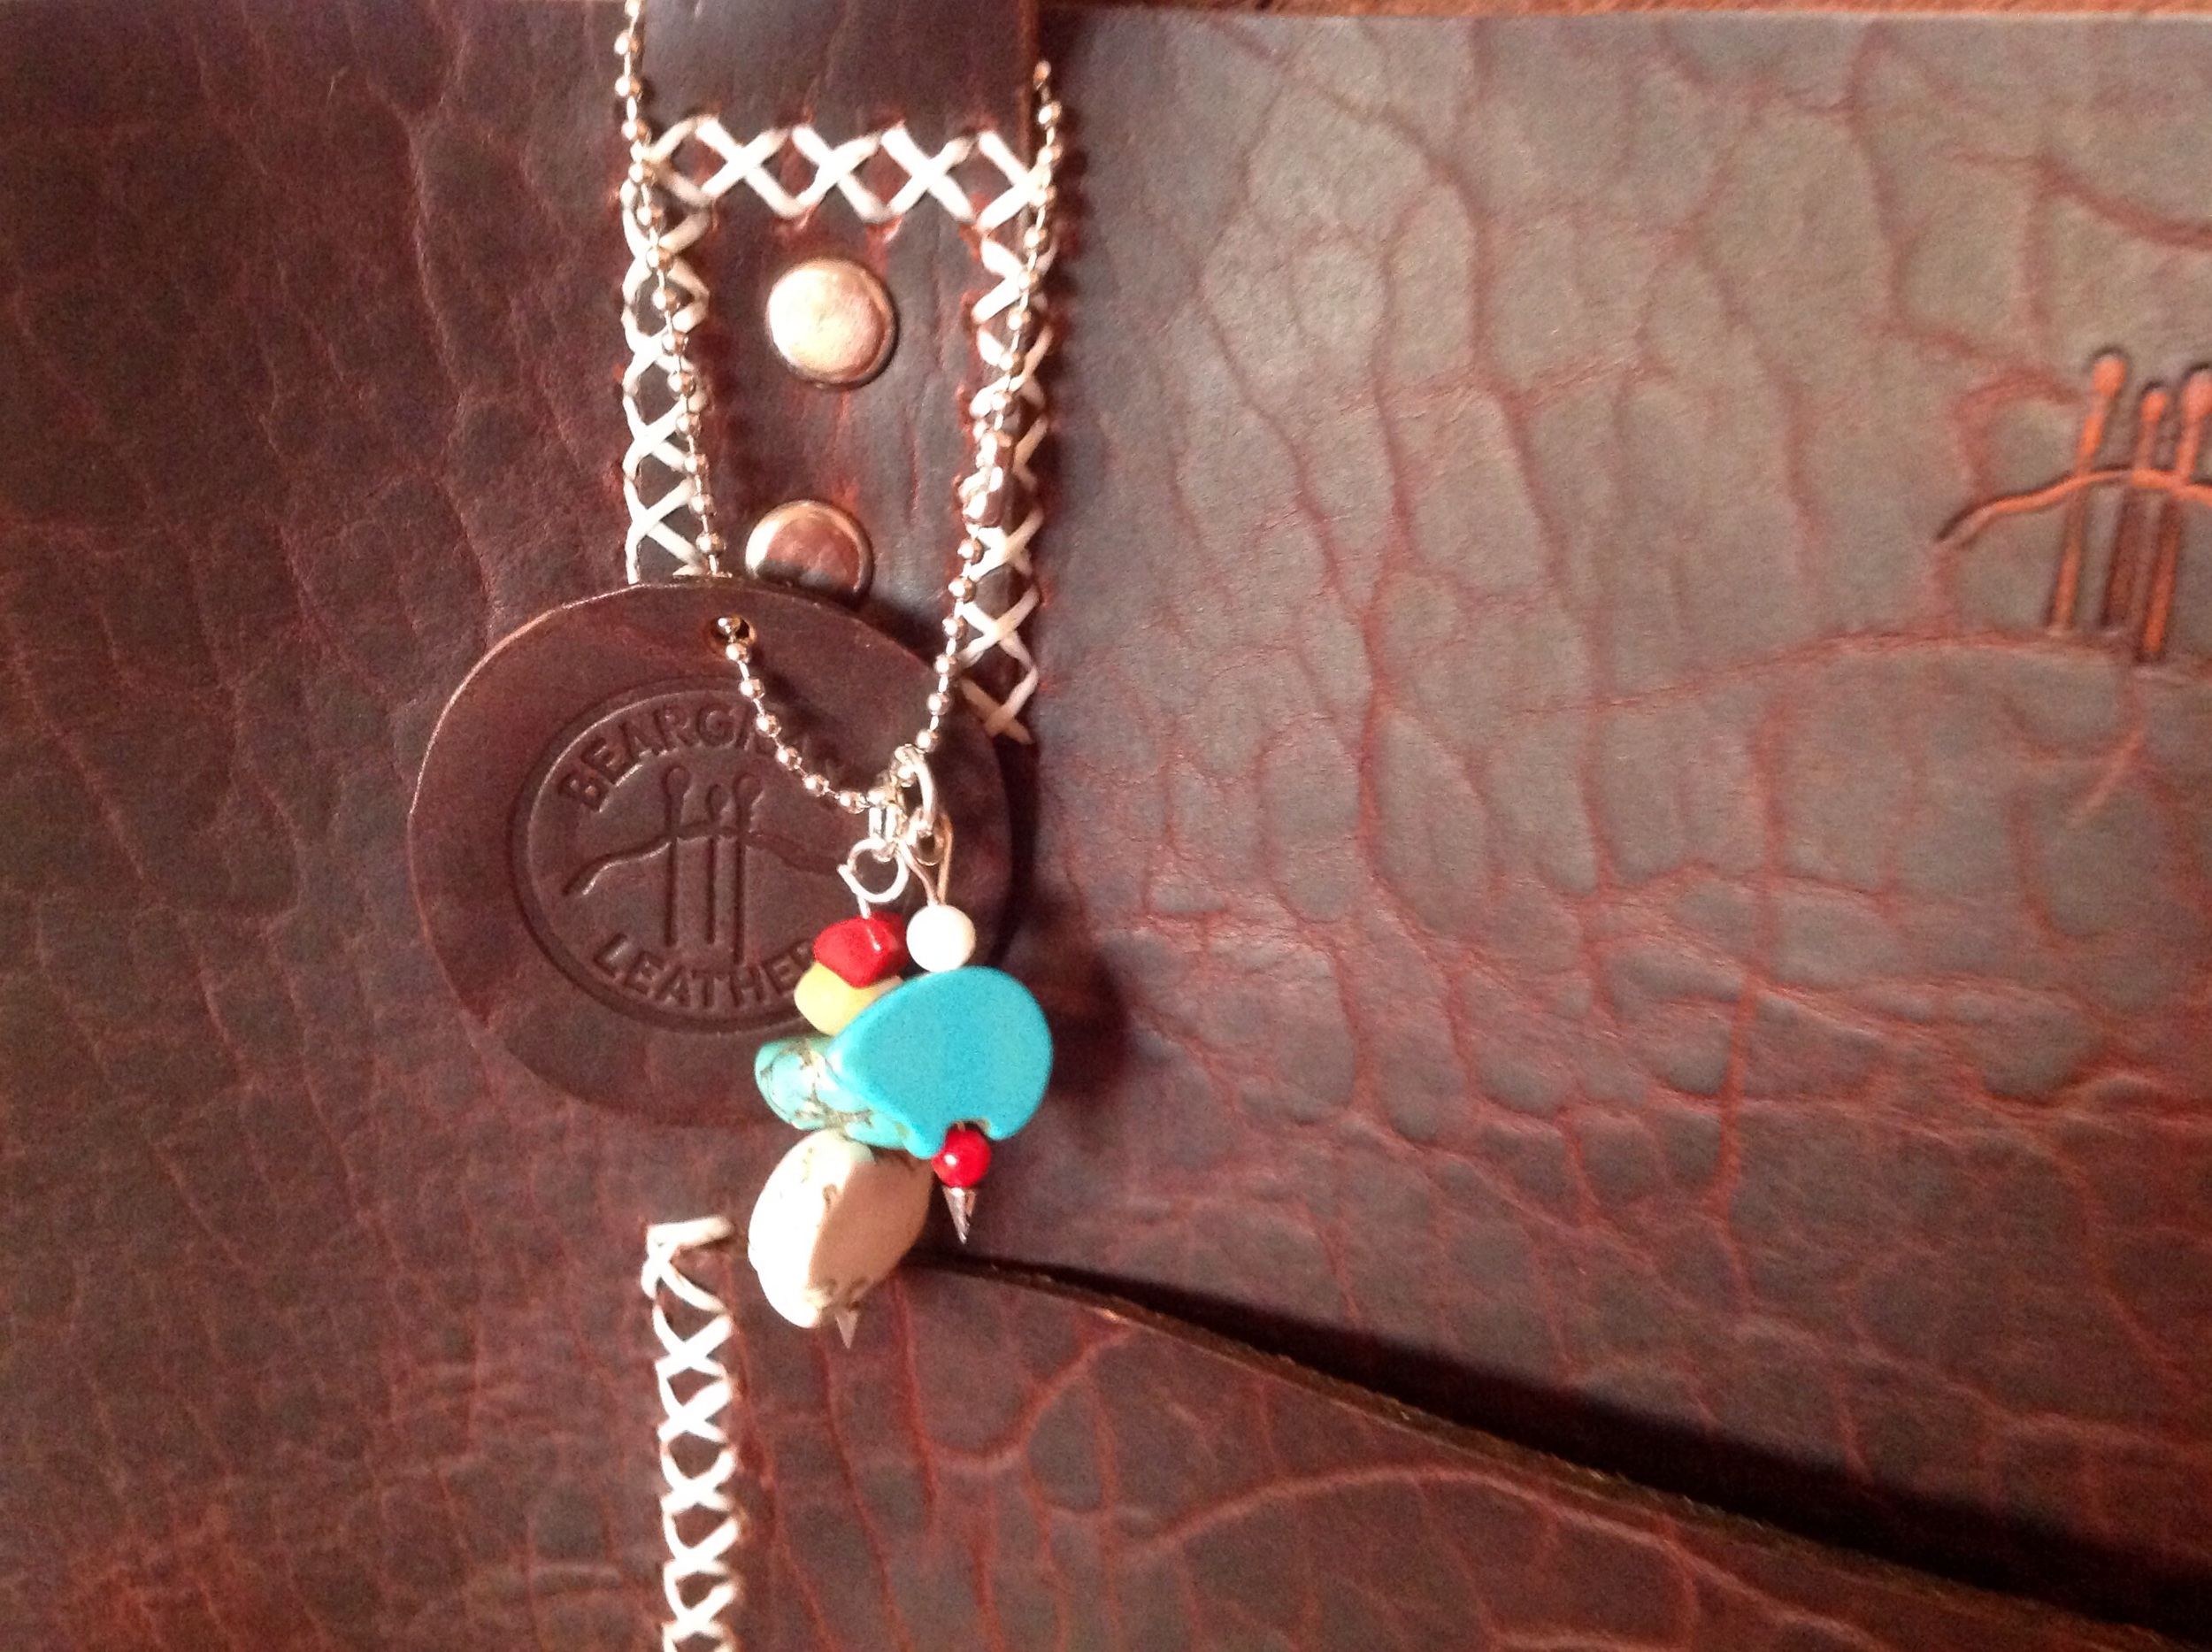 Sam included a zuni bear in turquoise for Maggie! Afterall, Maggie is a true mama bear.